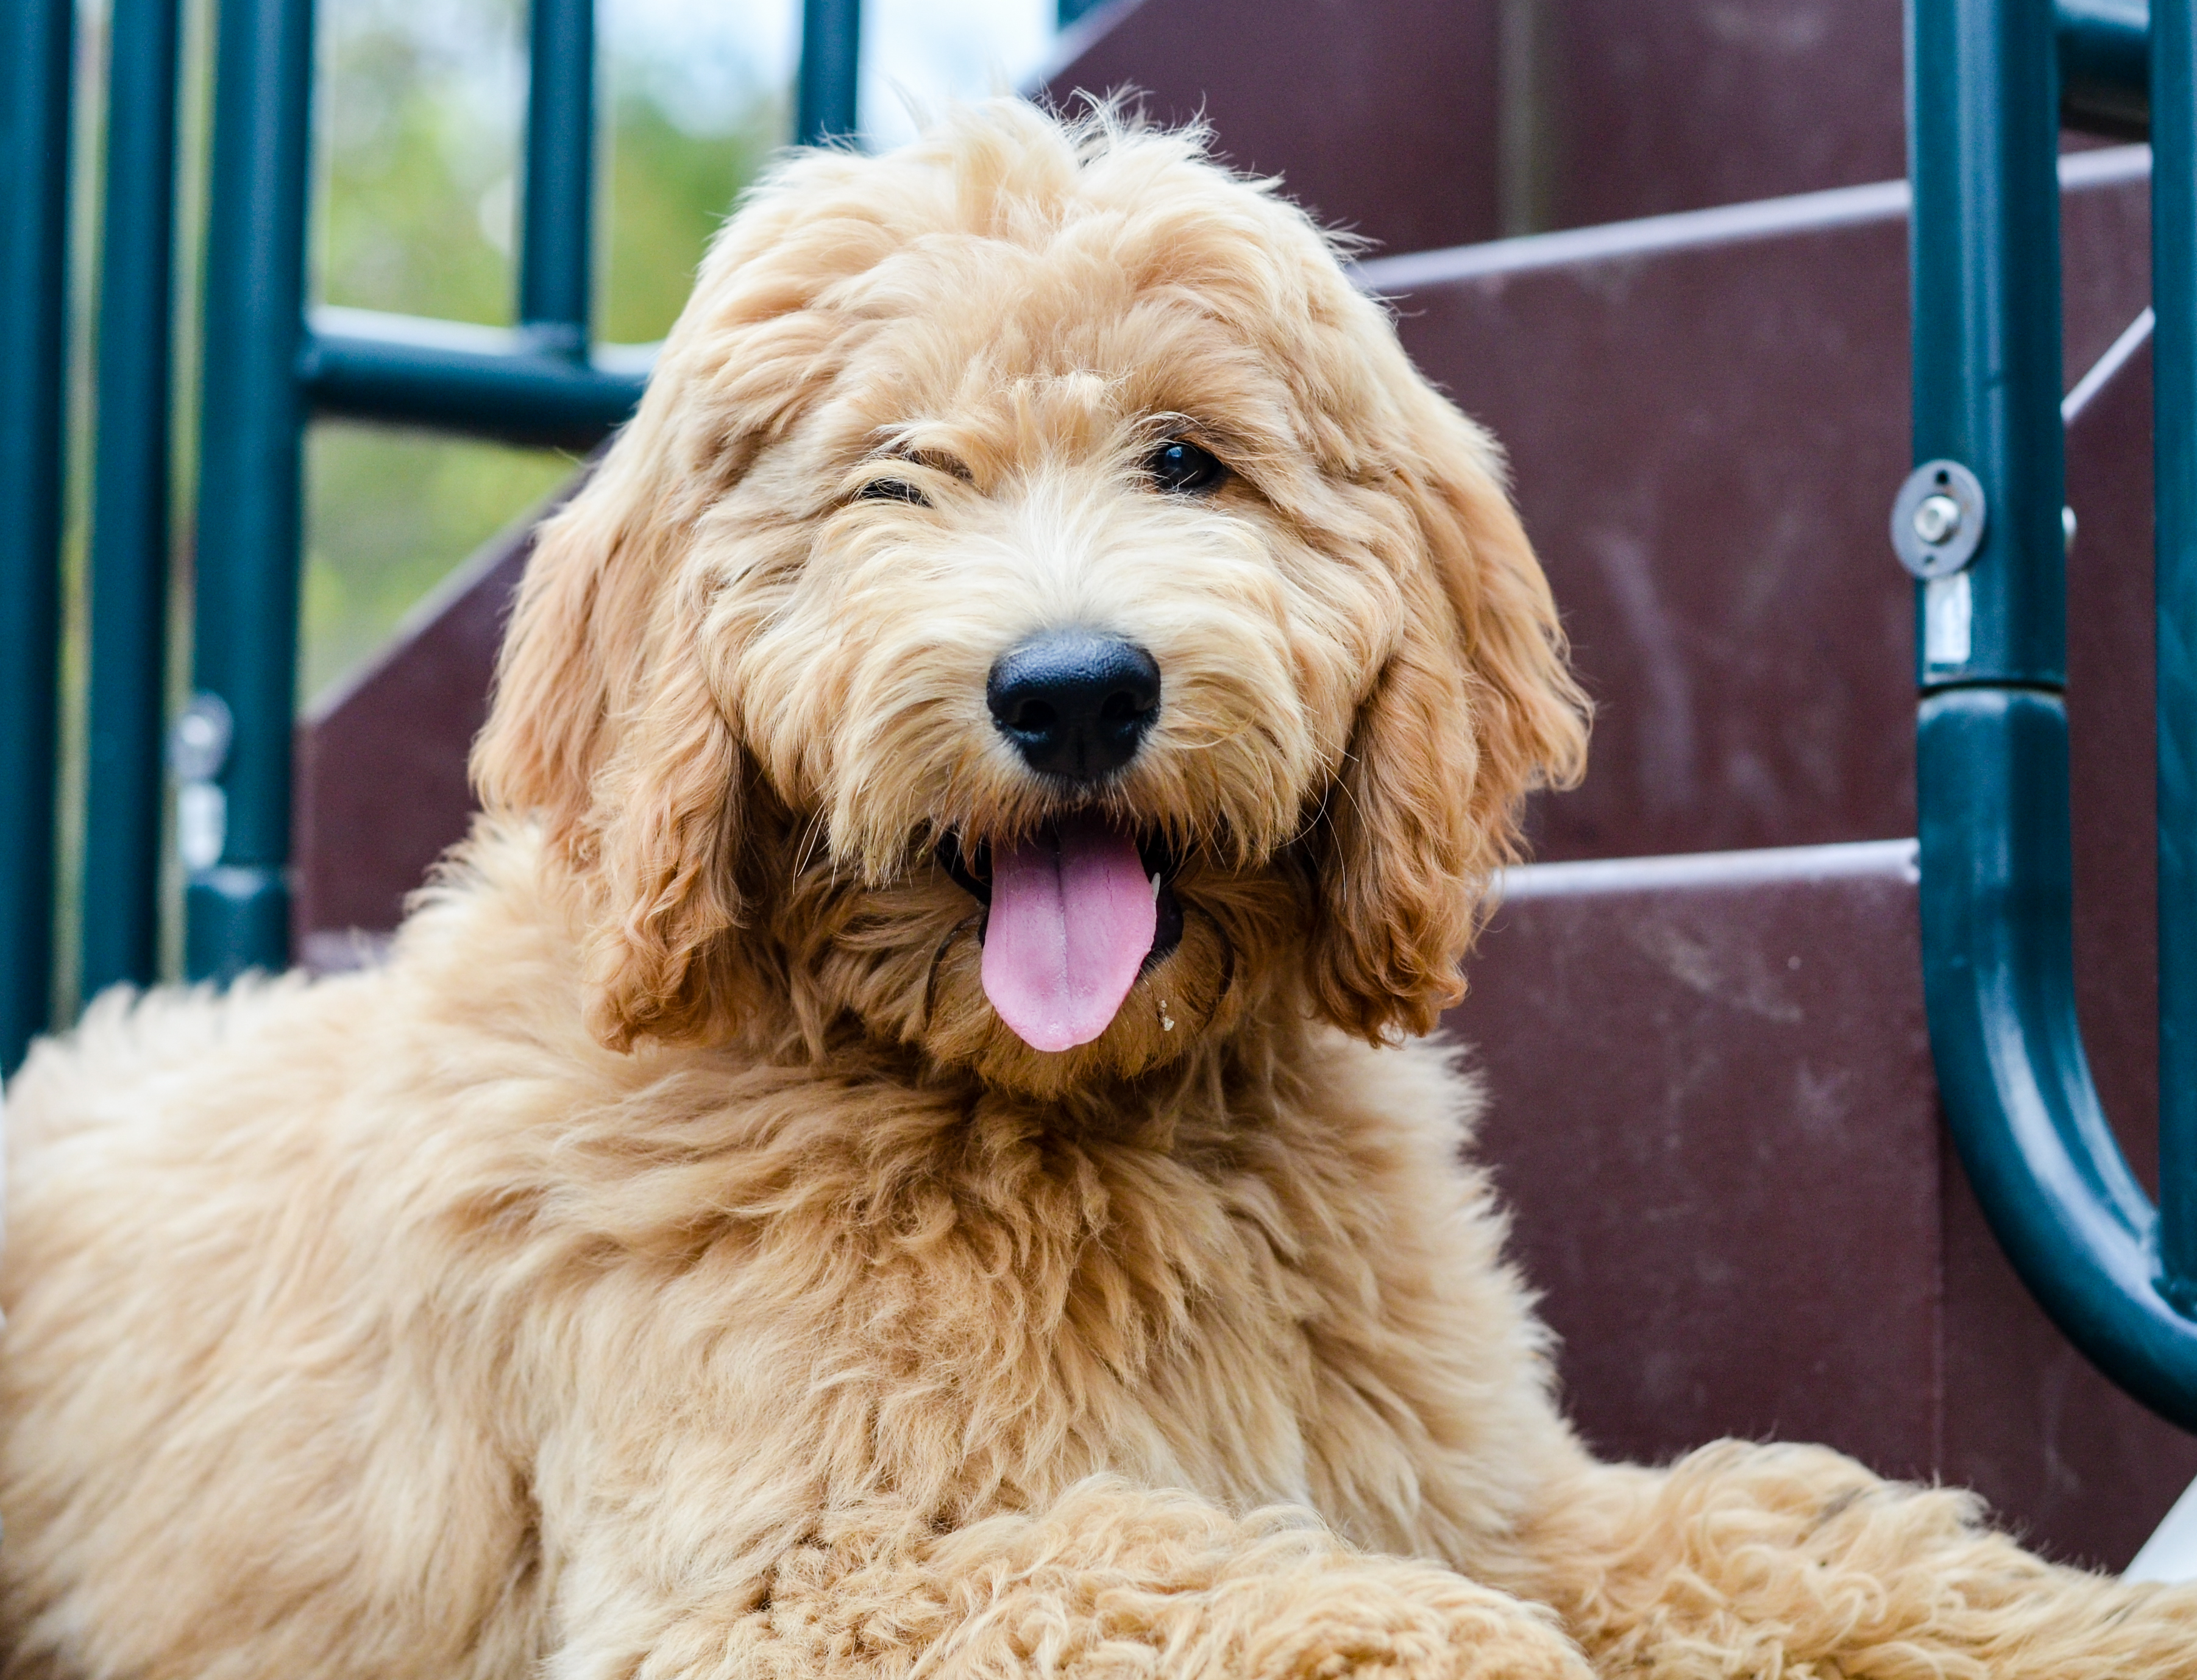 Blog archives timberidge goldendoodles grooming your doodle nvjuhfo Images